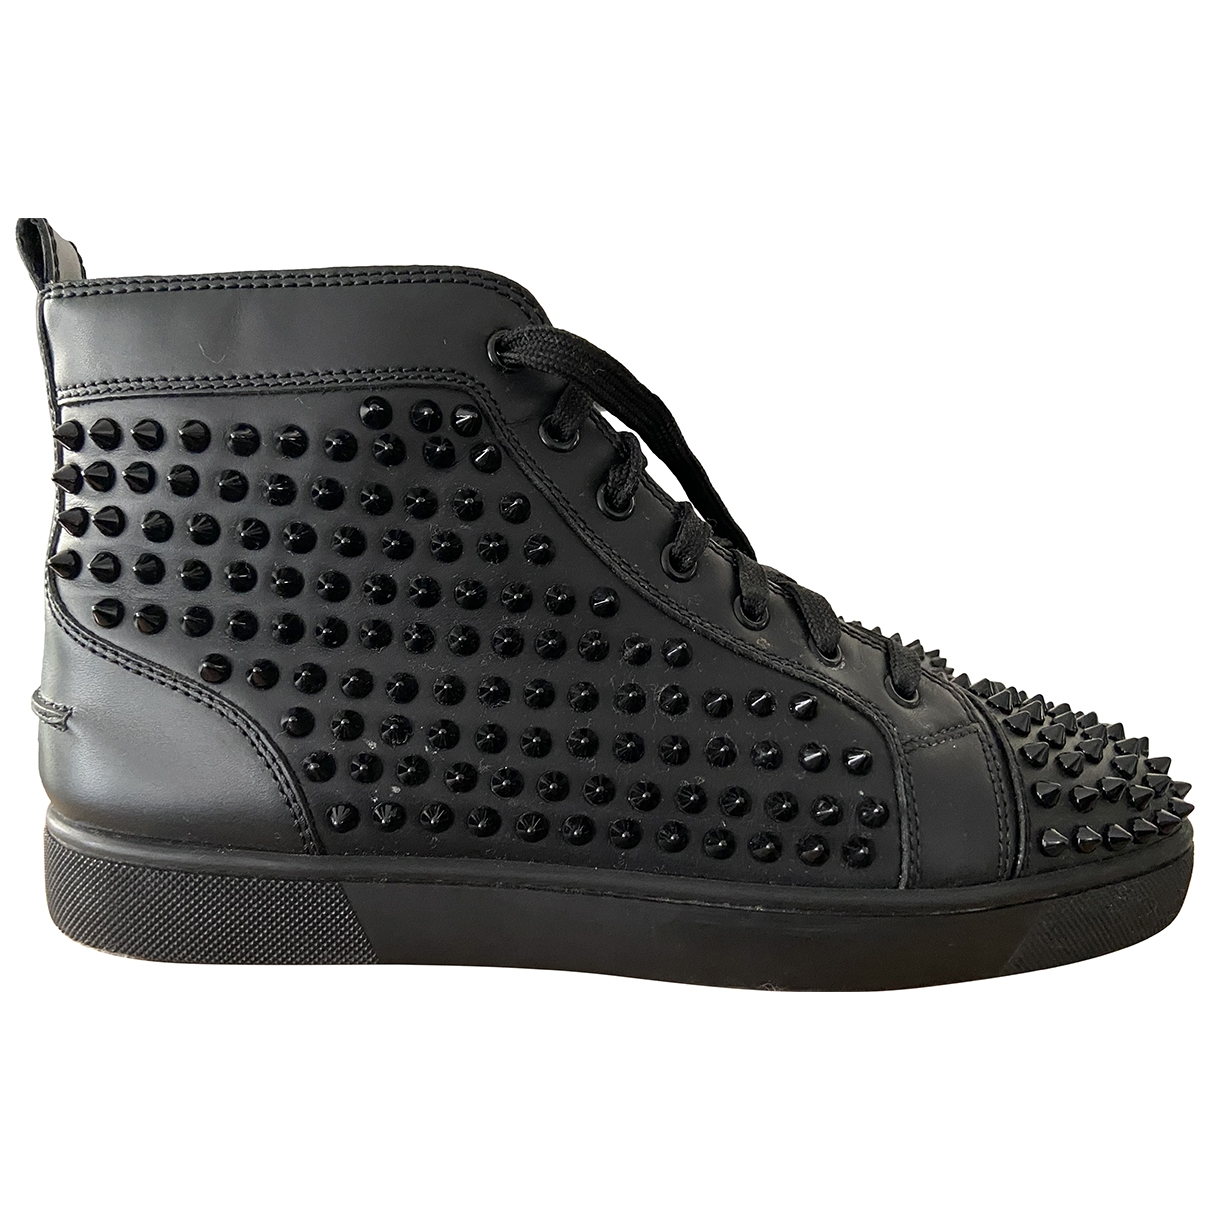 Christian Louboutin Spike Sock Black Leather Trainers for Men 42 EU